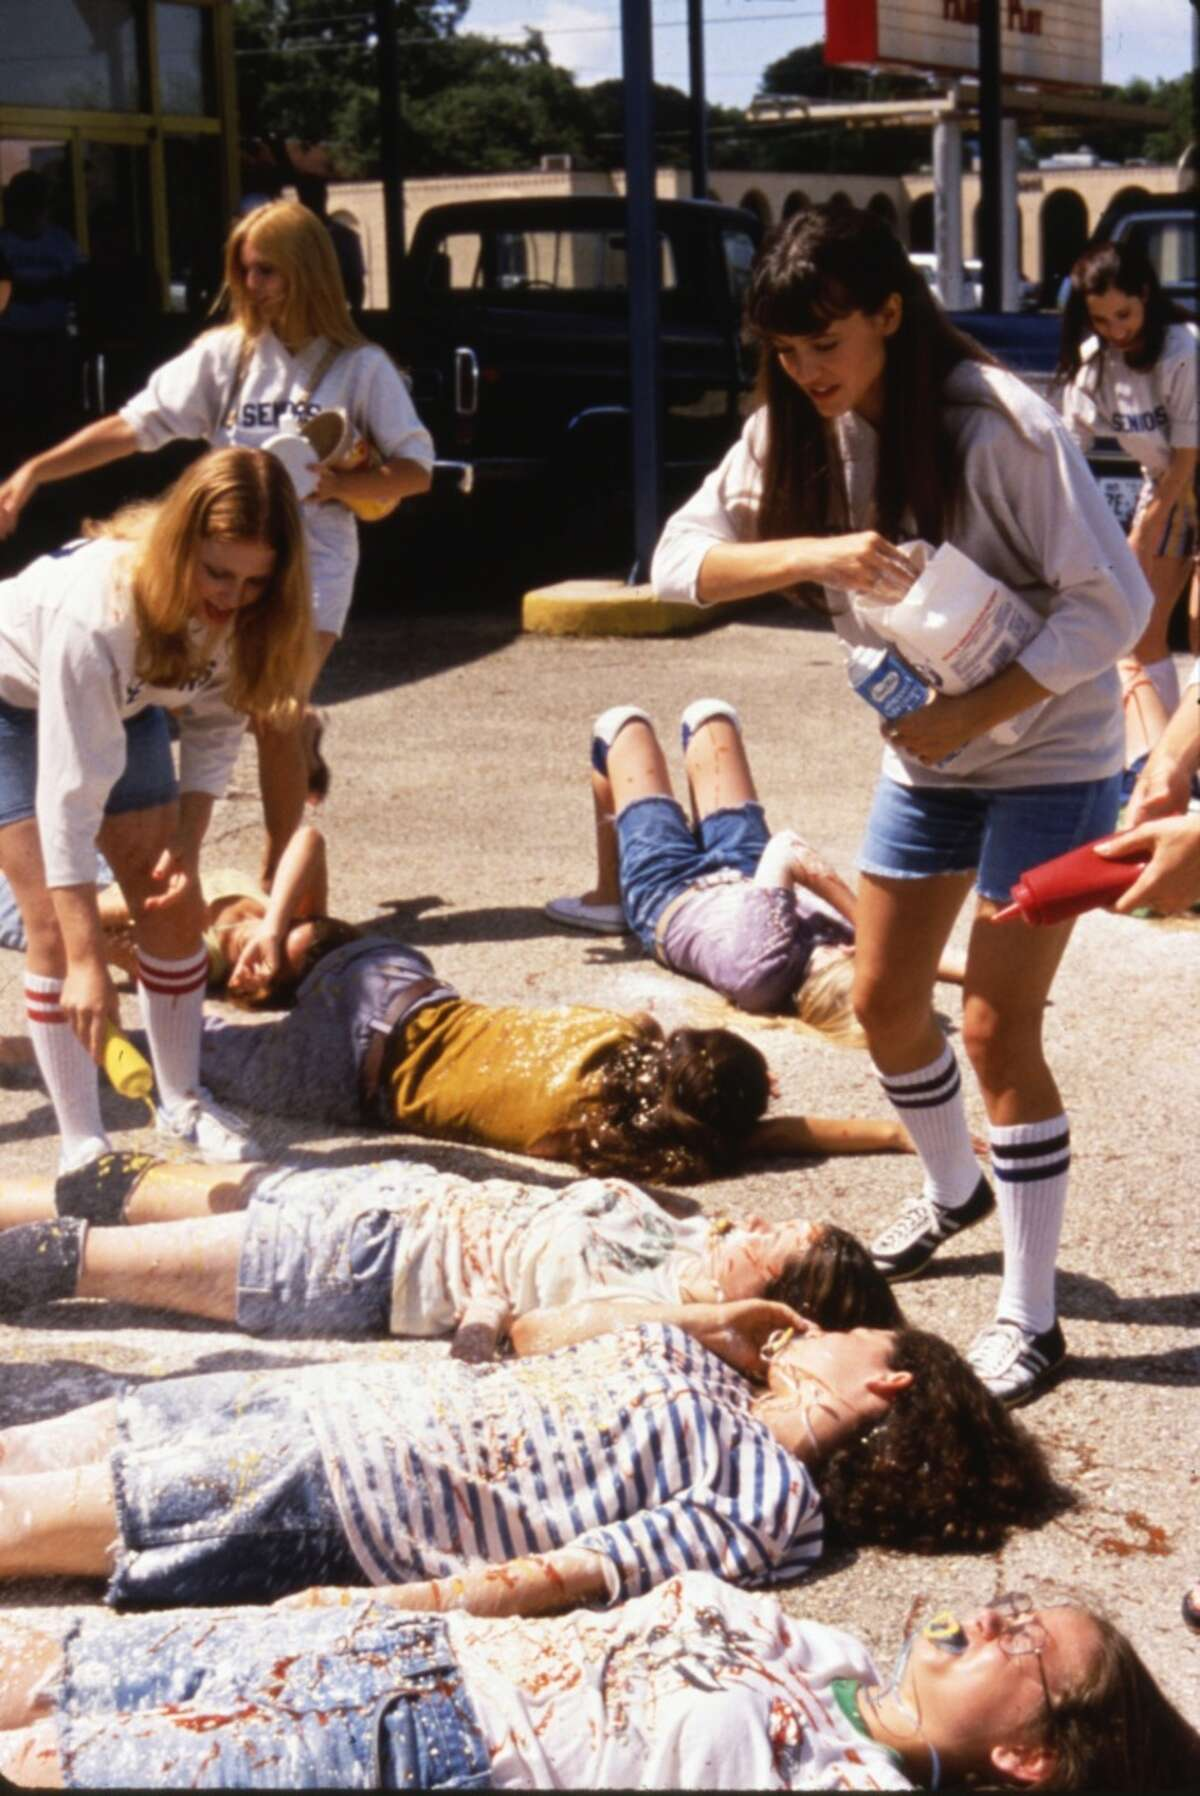 """Darla Marks (Parker Posey), """"Dazed and Confused"""" Yes, Matthew McMatthew McConaughey's Dale Wooderson stole the show in this Richard Linklater classic. But it was Posey's Darla Marks that gleefuly, took such pleasure in taking part in a hazing ritual you reserved for boys being boys."""